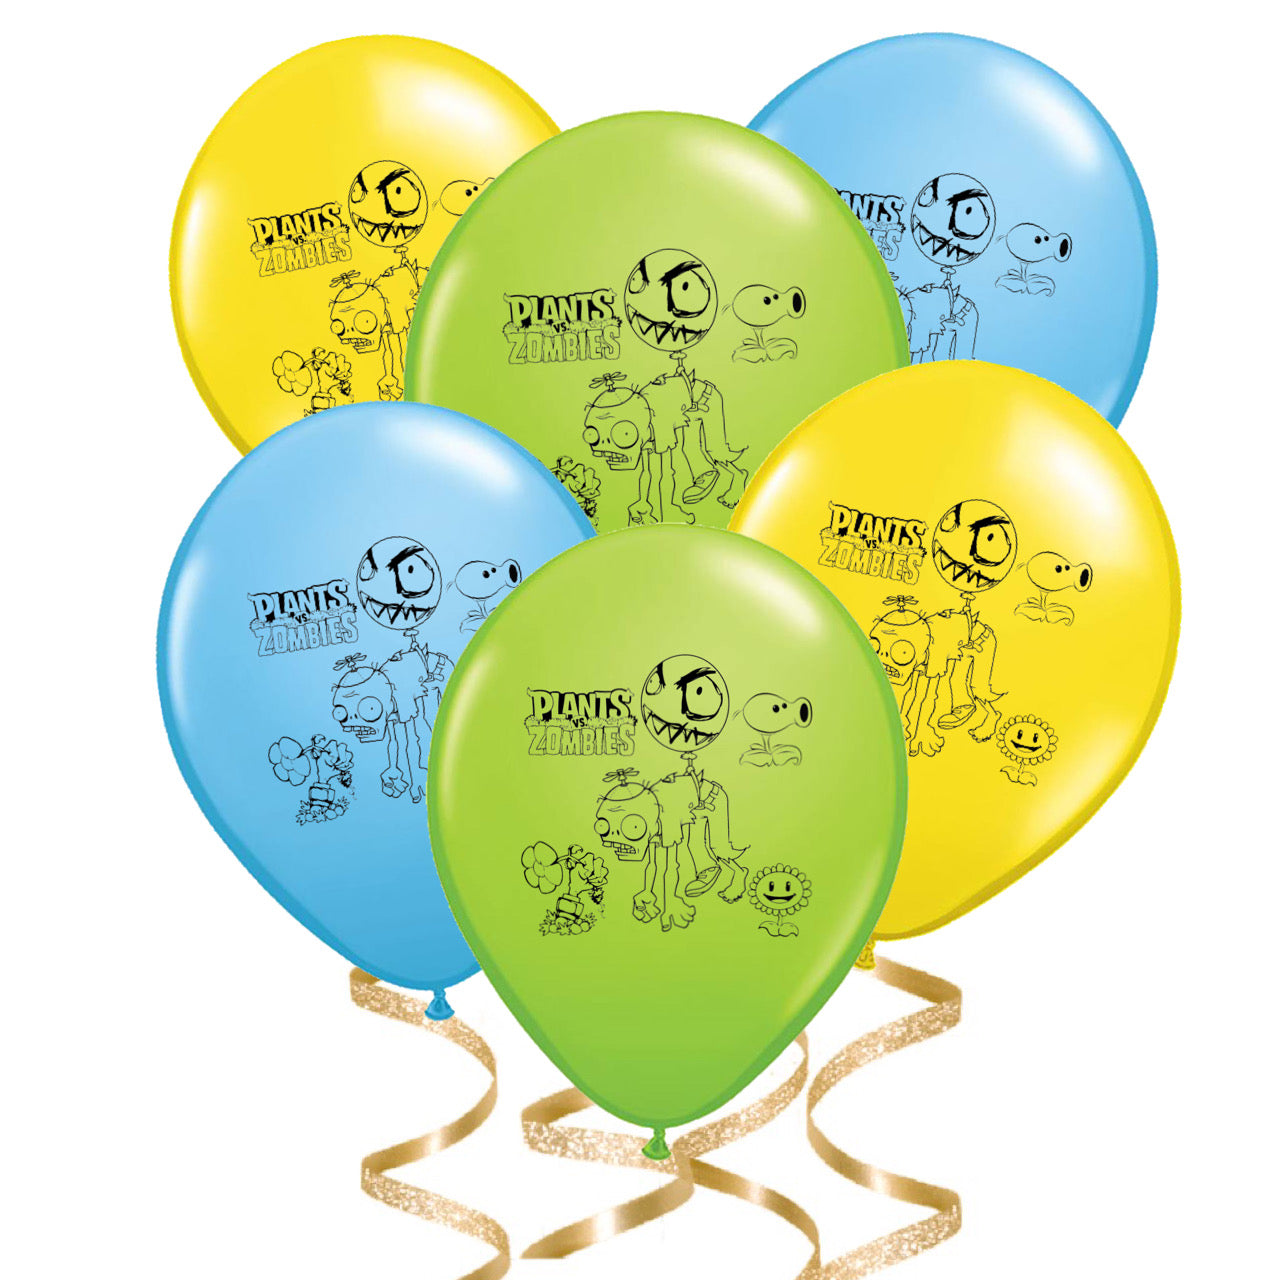 Plants vs Zombies Party Balloons